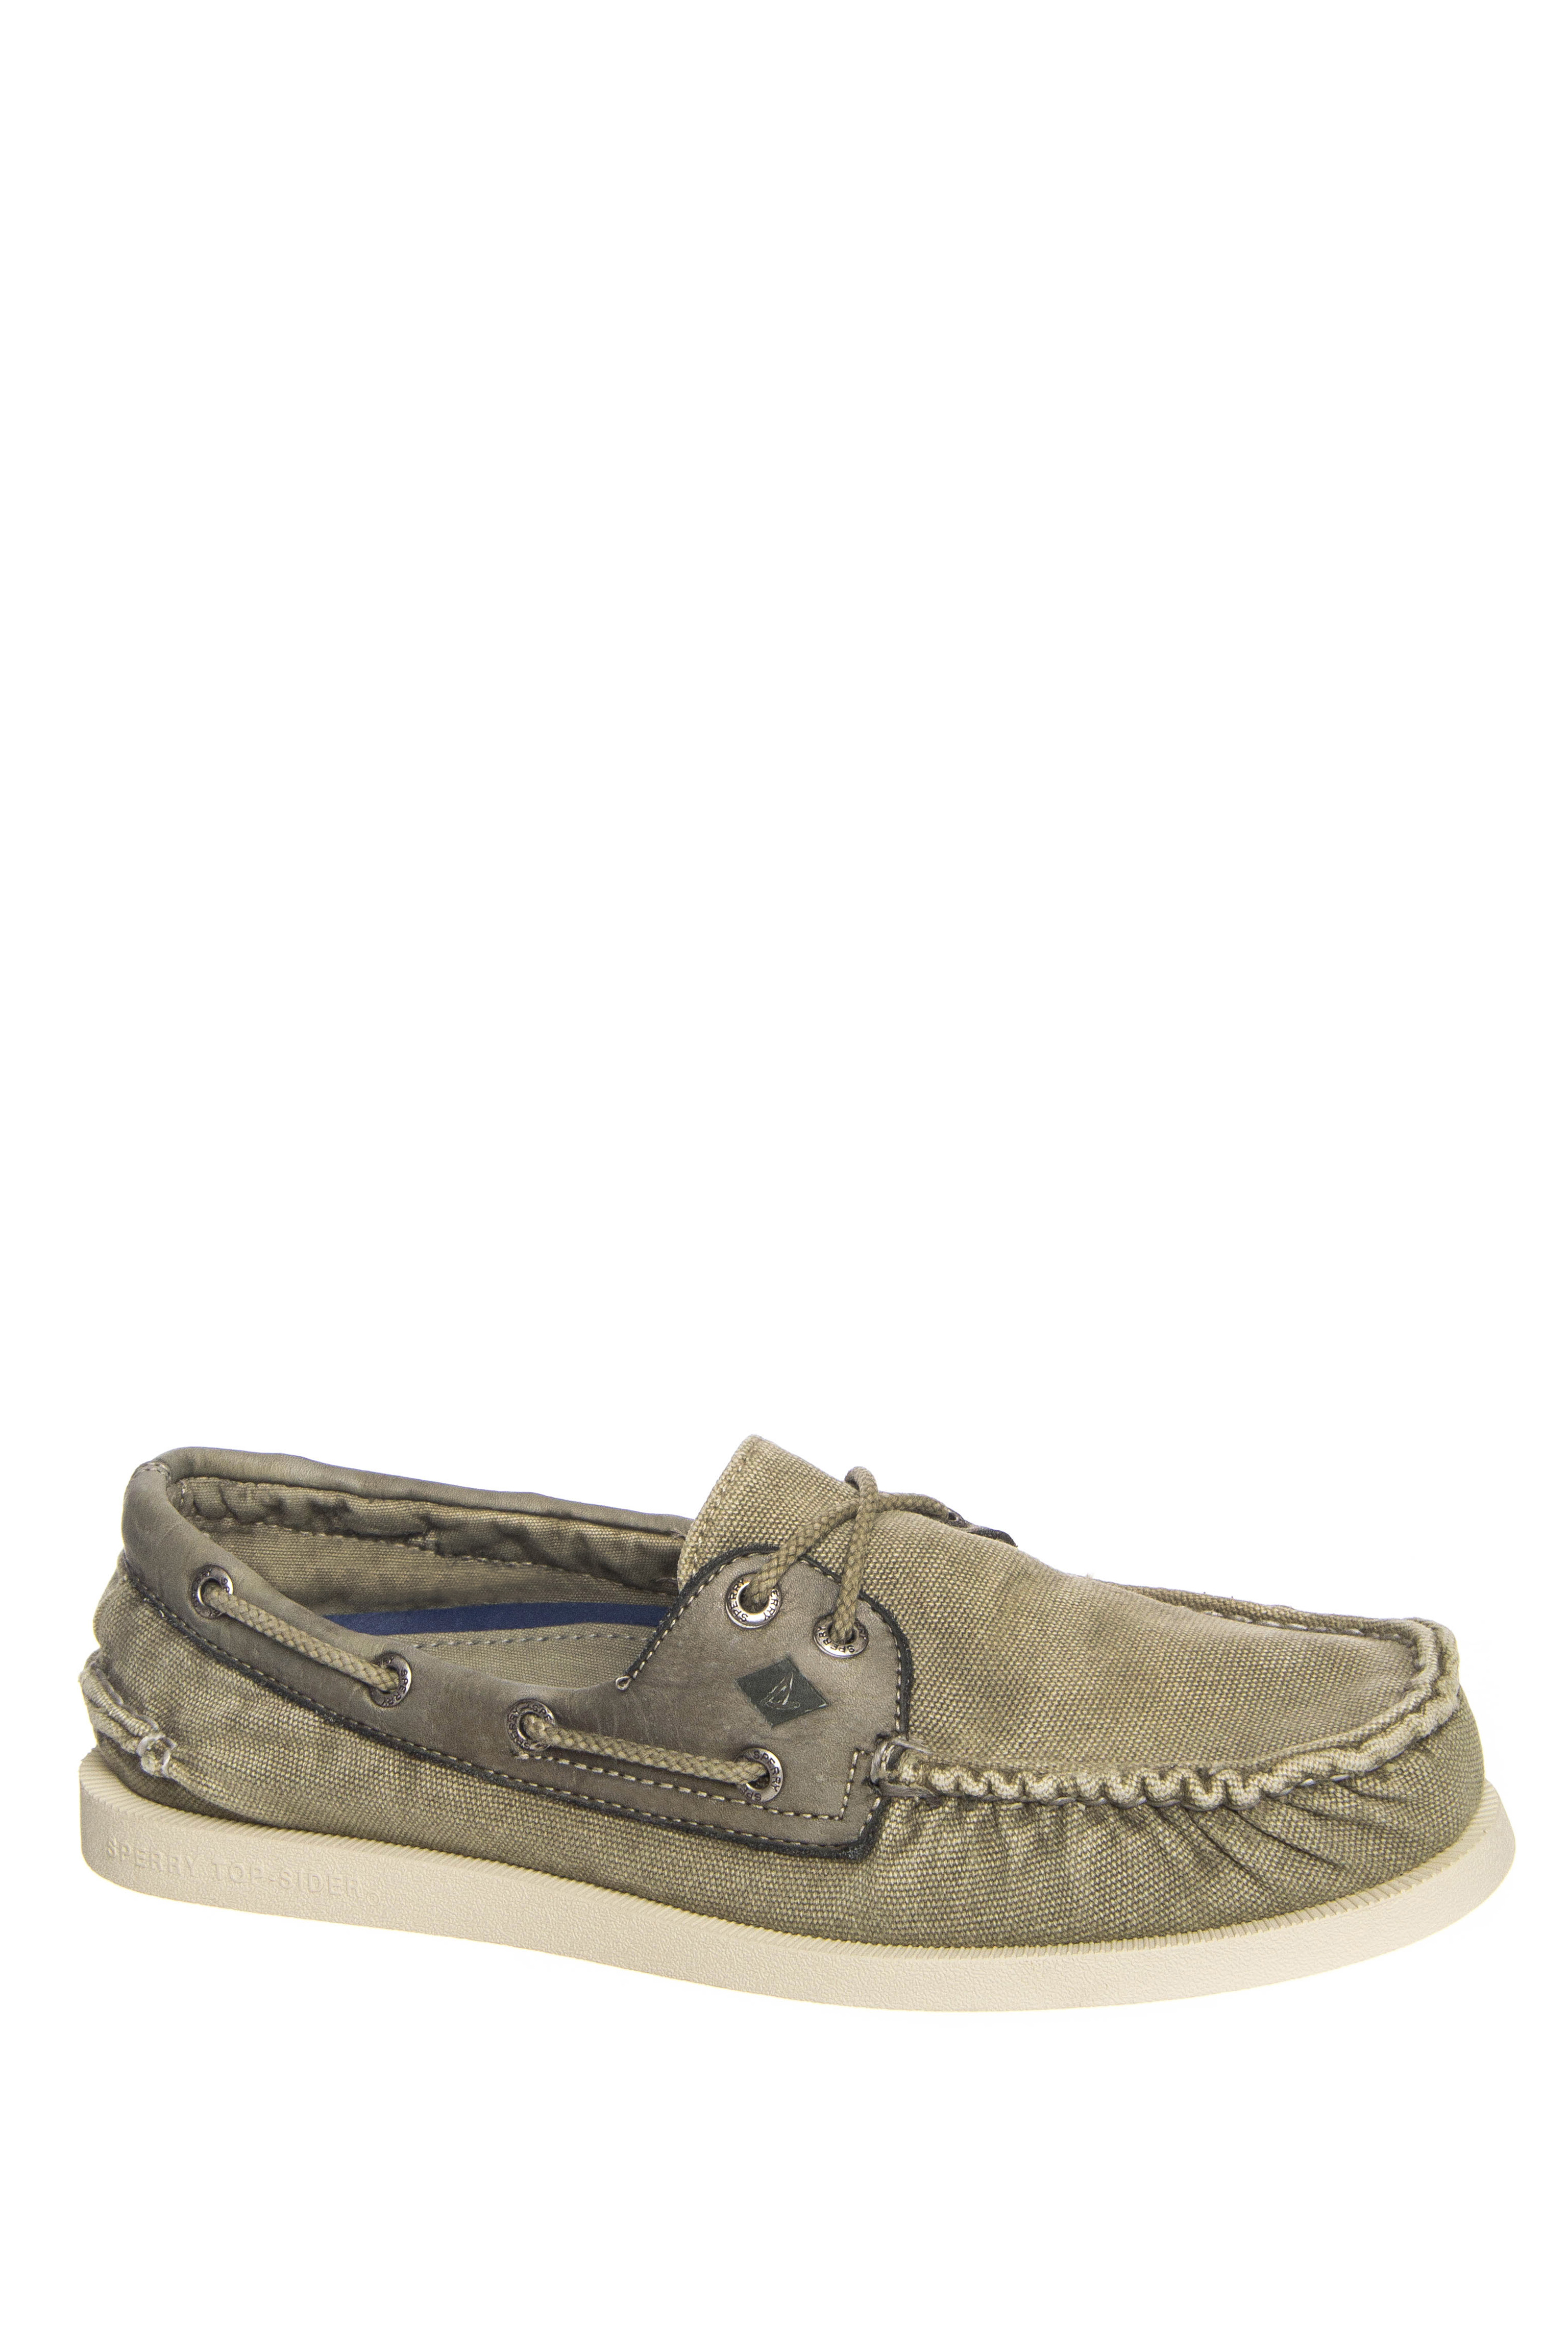 Sperry Men's Authentic Original Wedge Canvas Boat Shoe - Olive